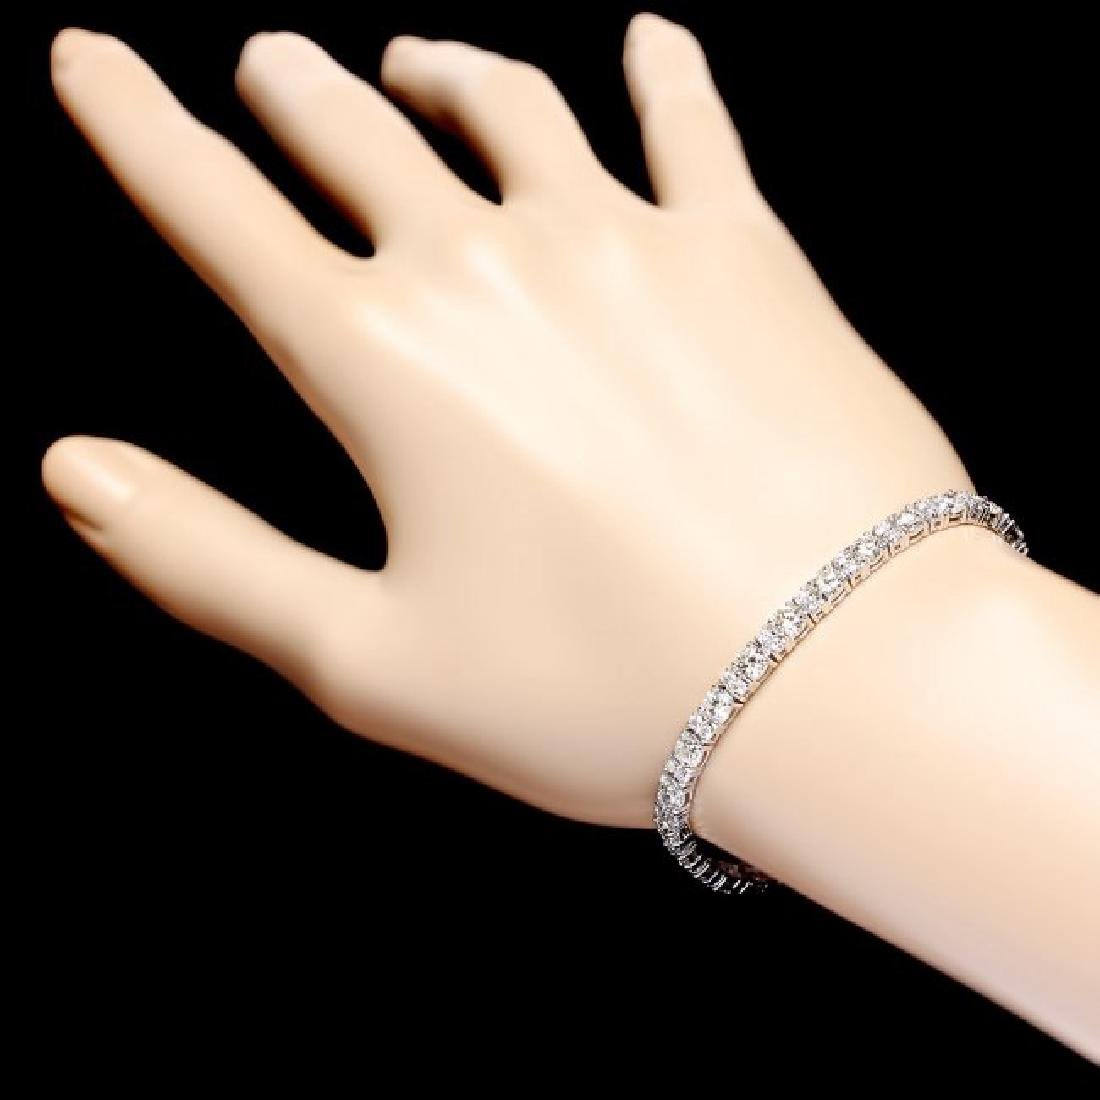 18k White Gold 8.60ct Diamond Bracelet - 5